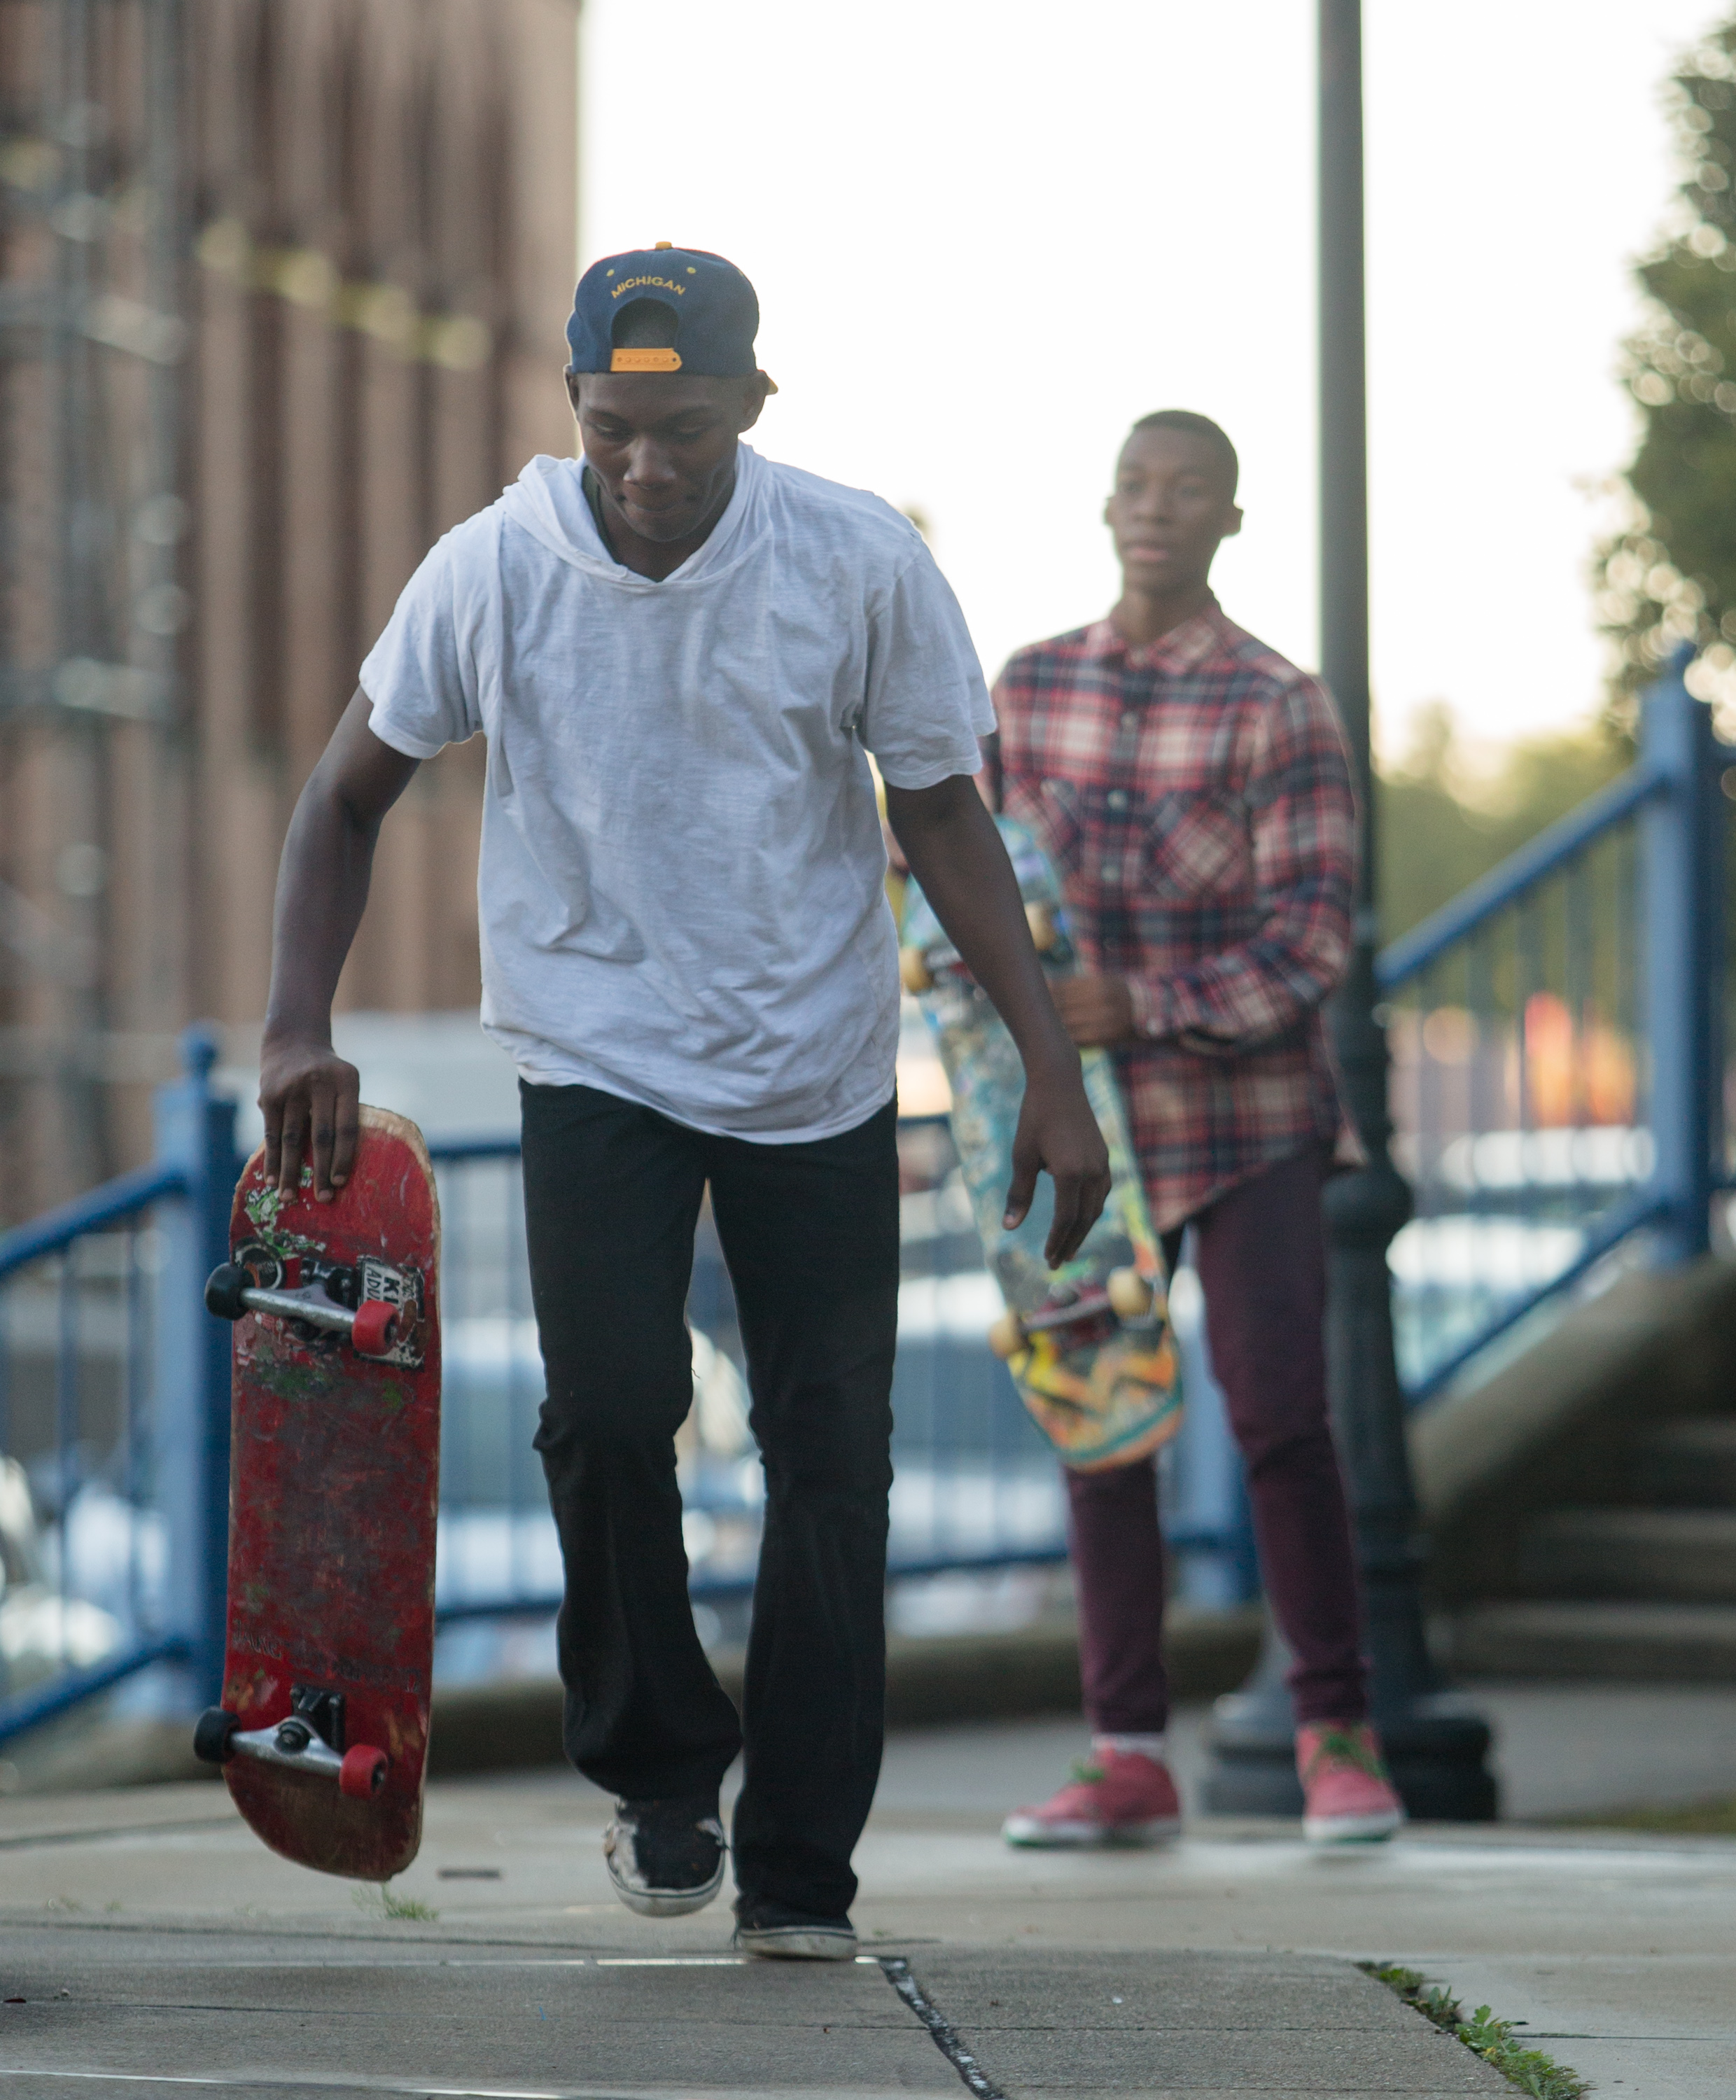 Gevante Wilson starts his run while his brother Gerald Lamar Wilson waits behind him on the steps behind the Imagination Station in downtown Toledo on Saturday, Sept. 17, 2016.